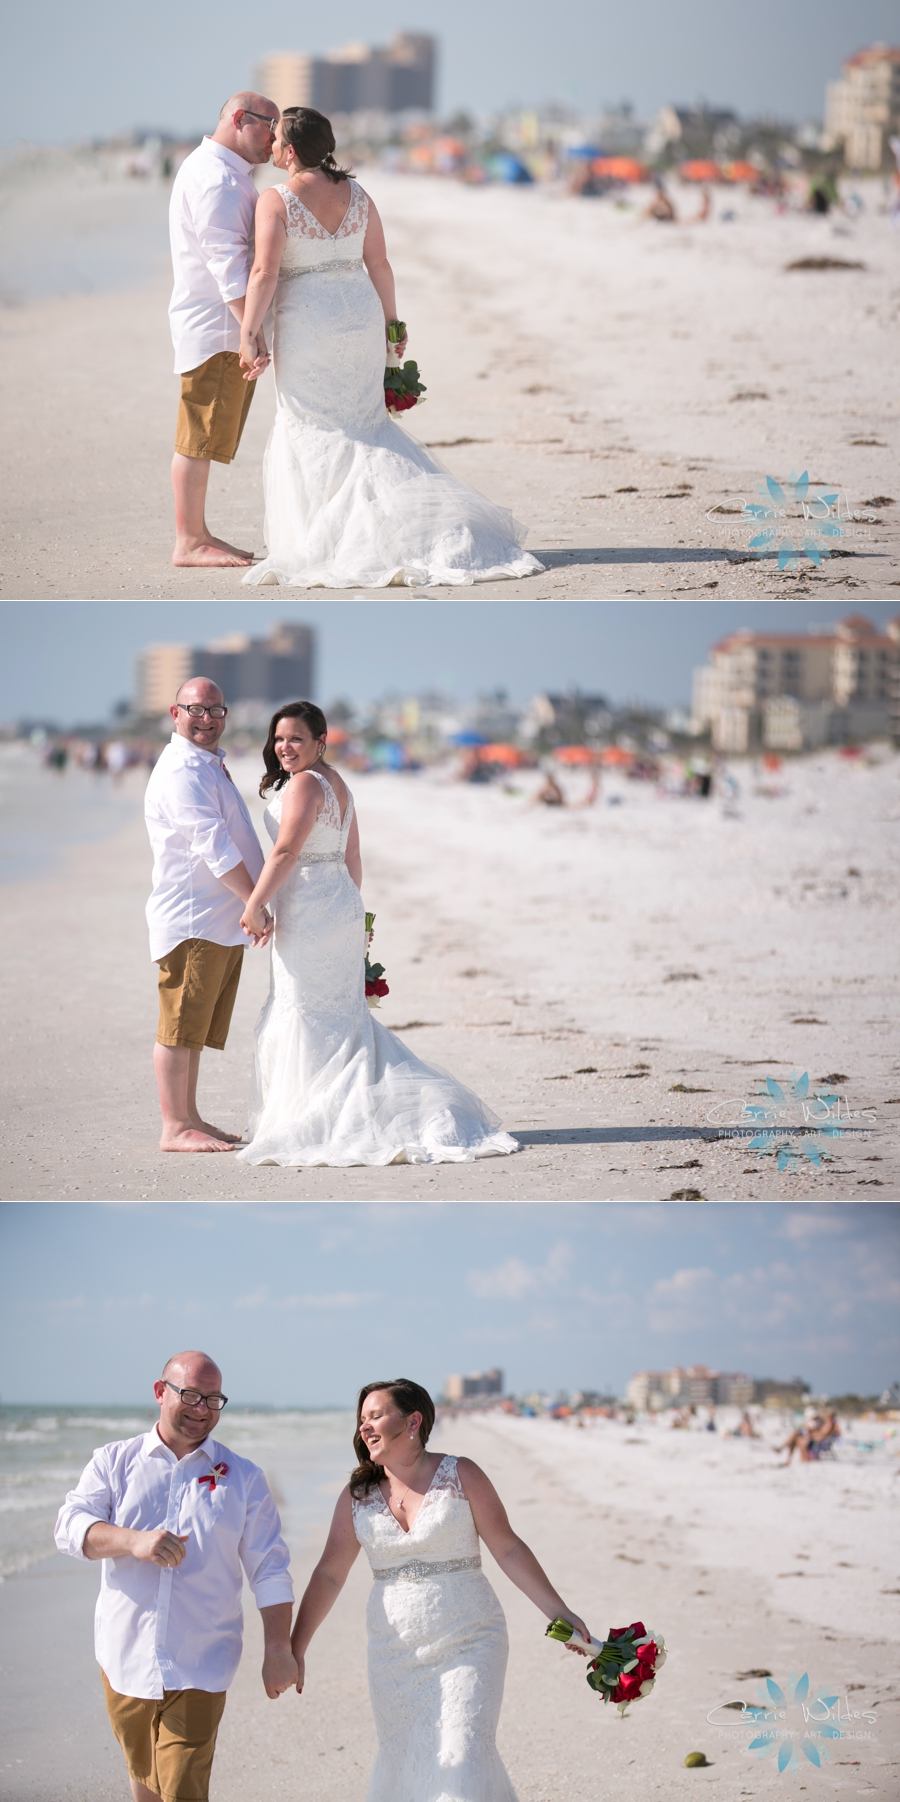 5_16_17 Sara and Ryan Hilton Clearwater Beach Wedding_0012.jpg